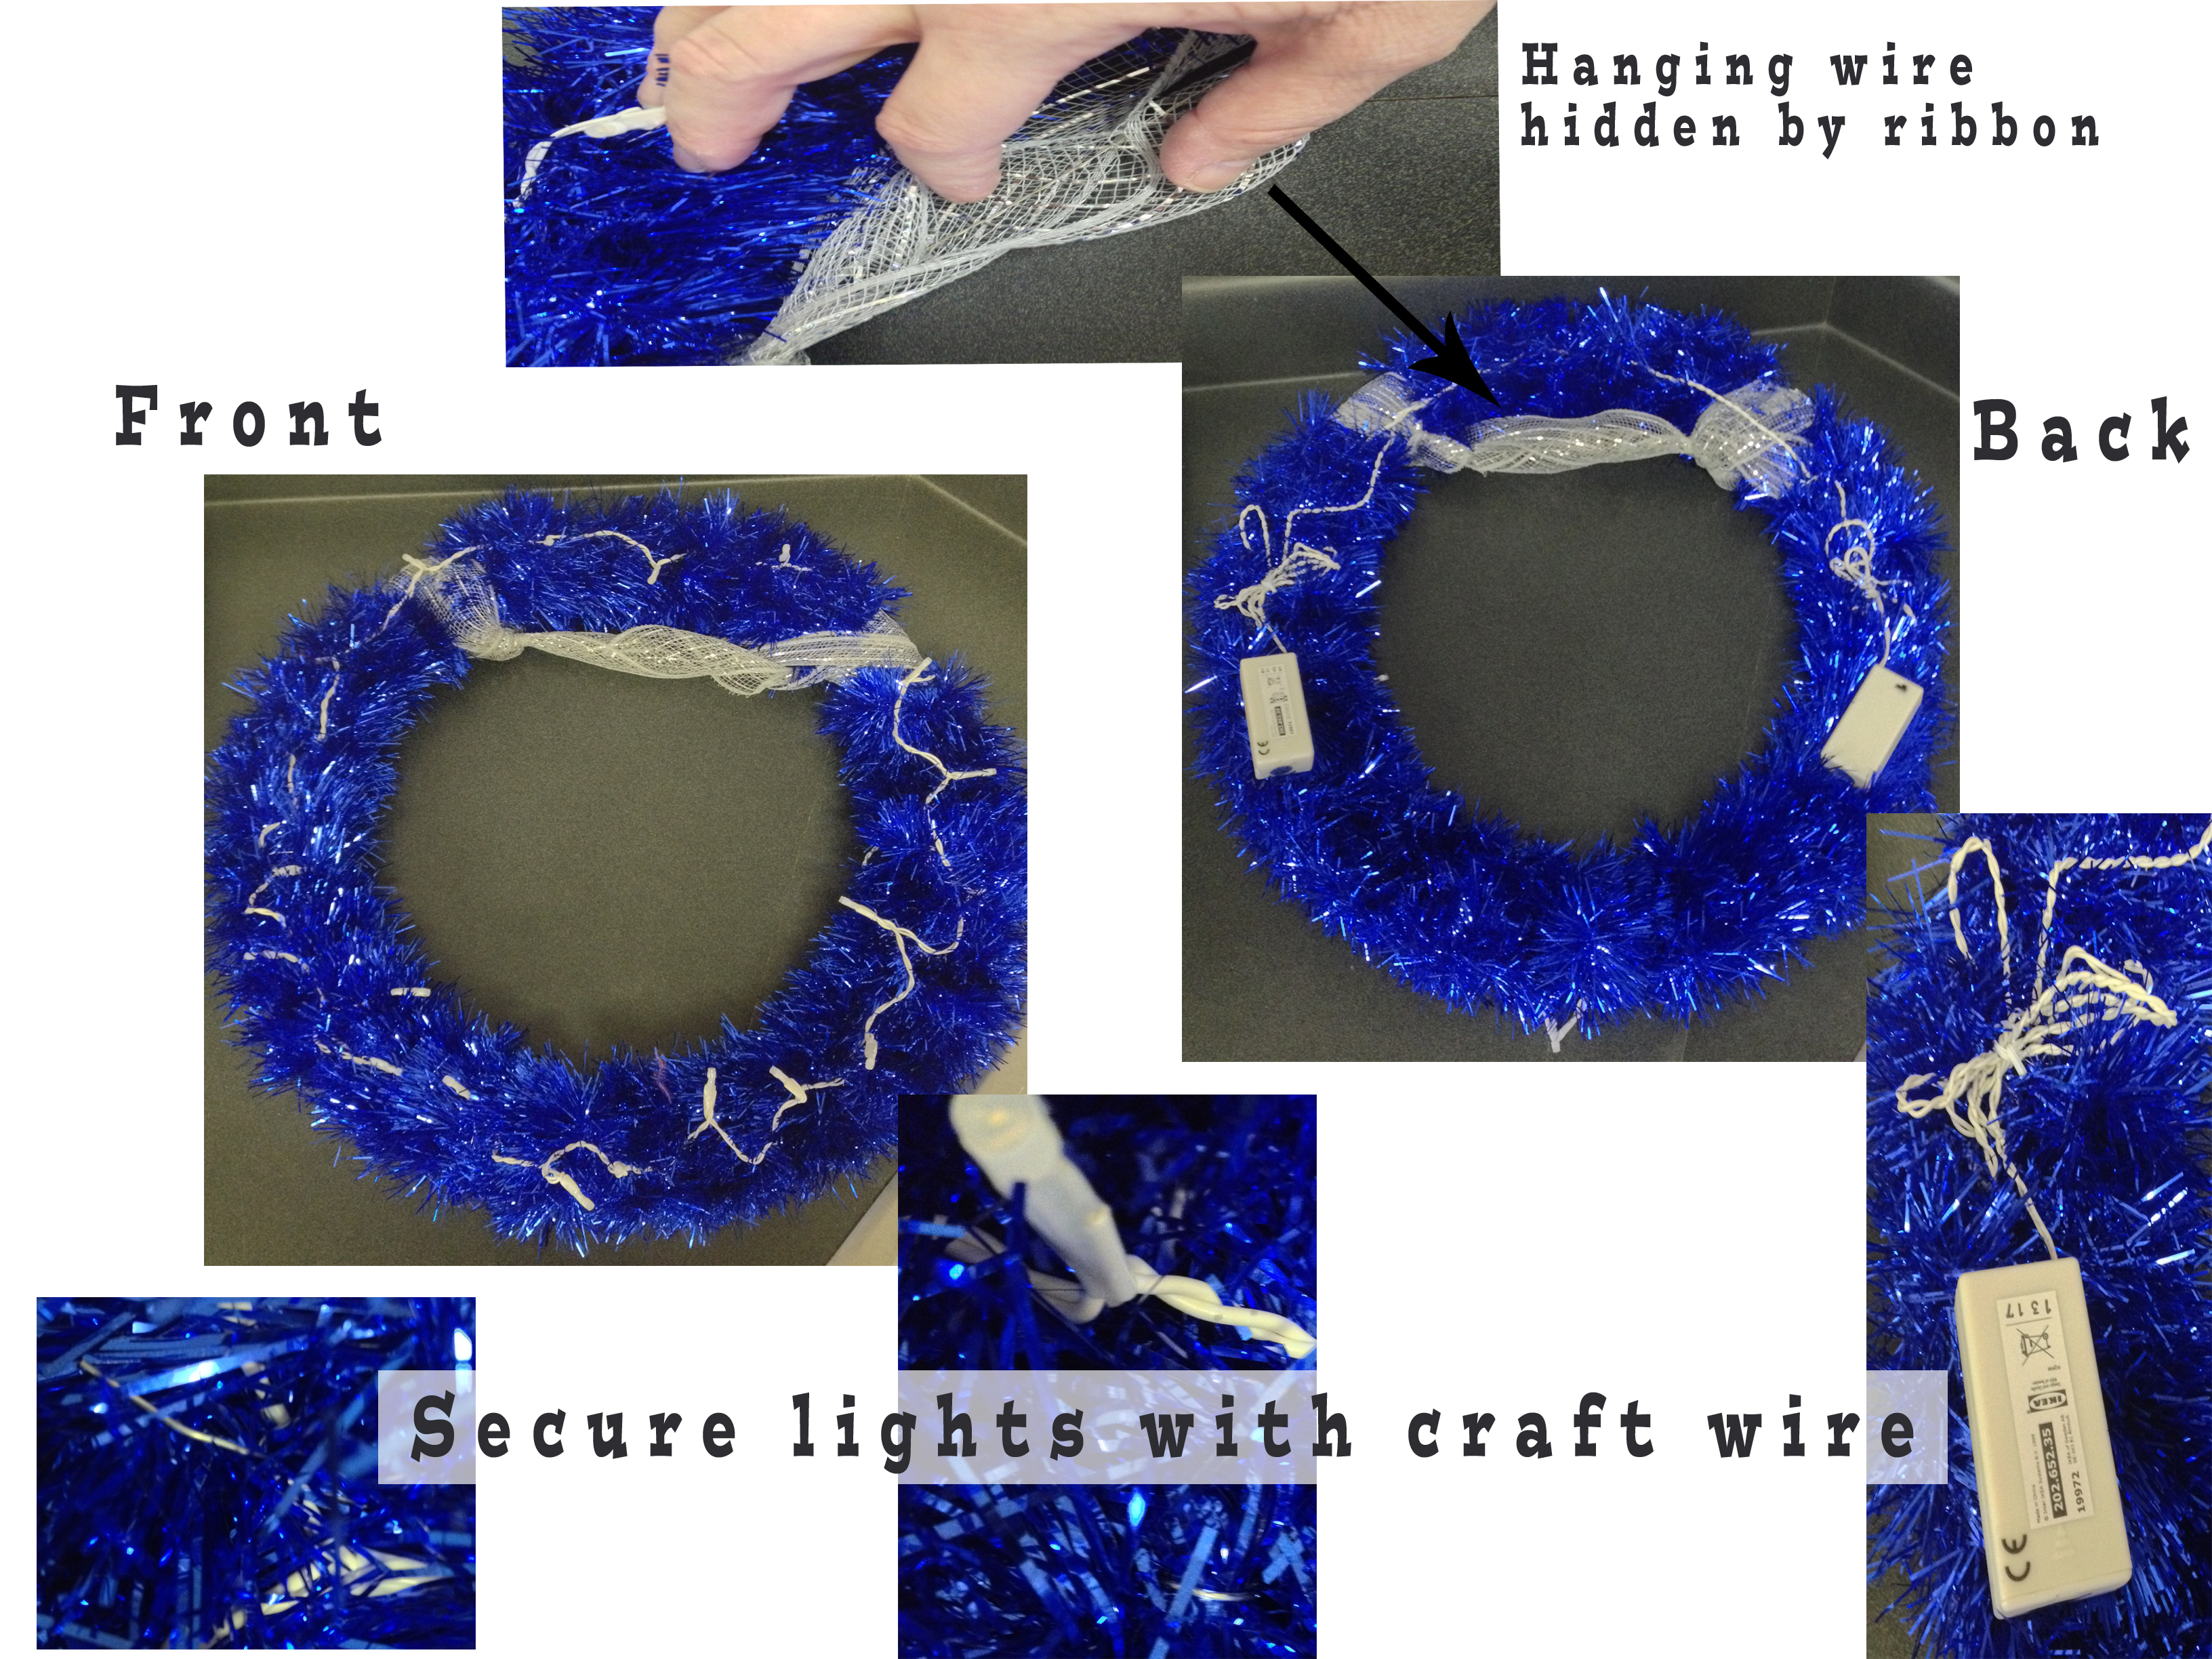 Picture of Layout: Wrap Wreath With Garland & Add Lights